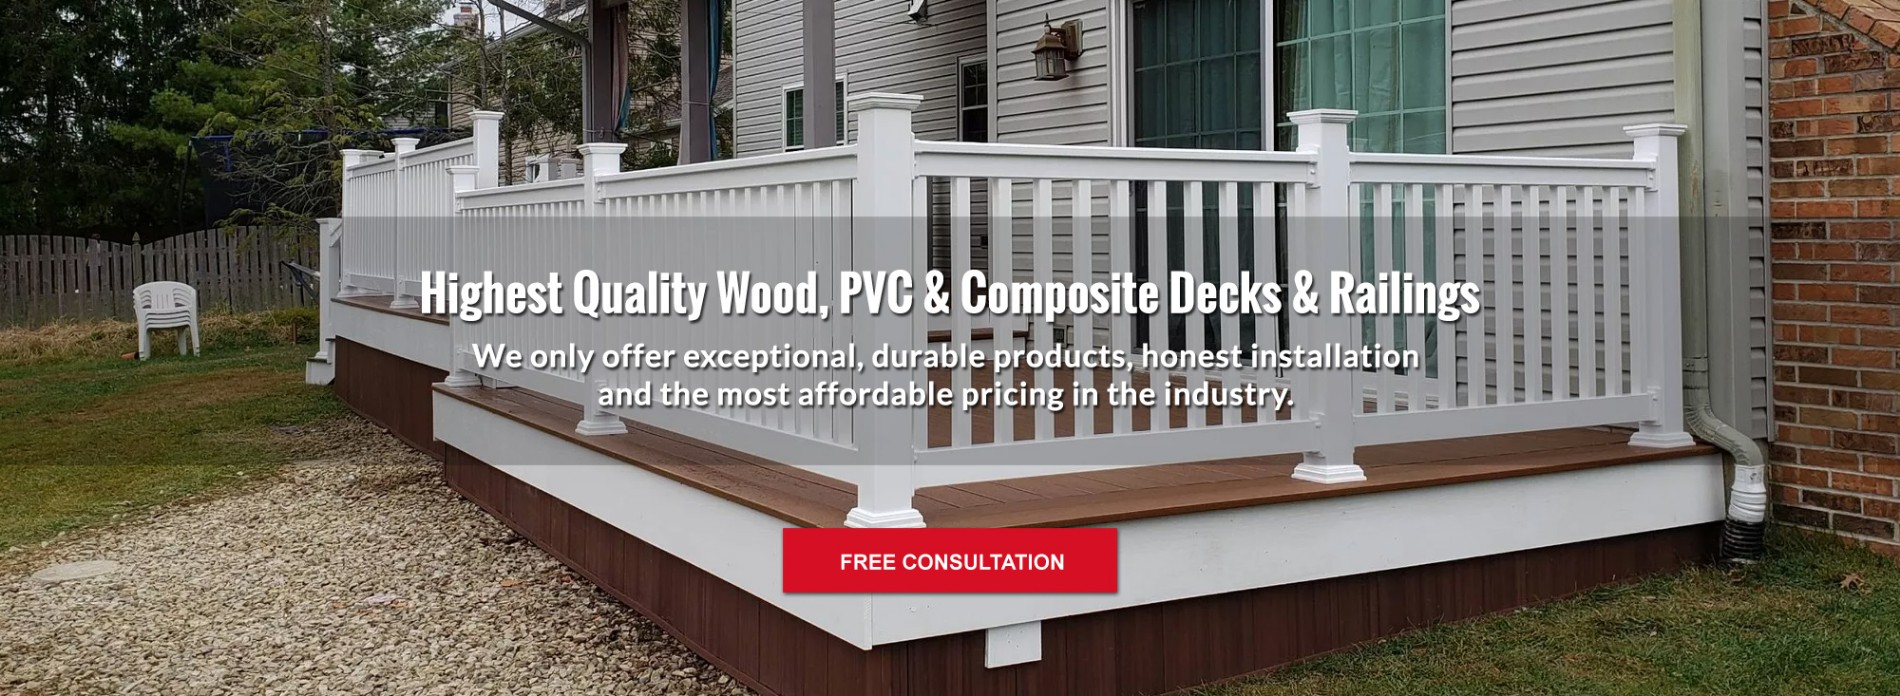 High Quality Deck and Railings